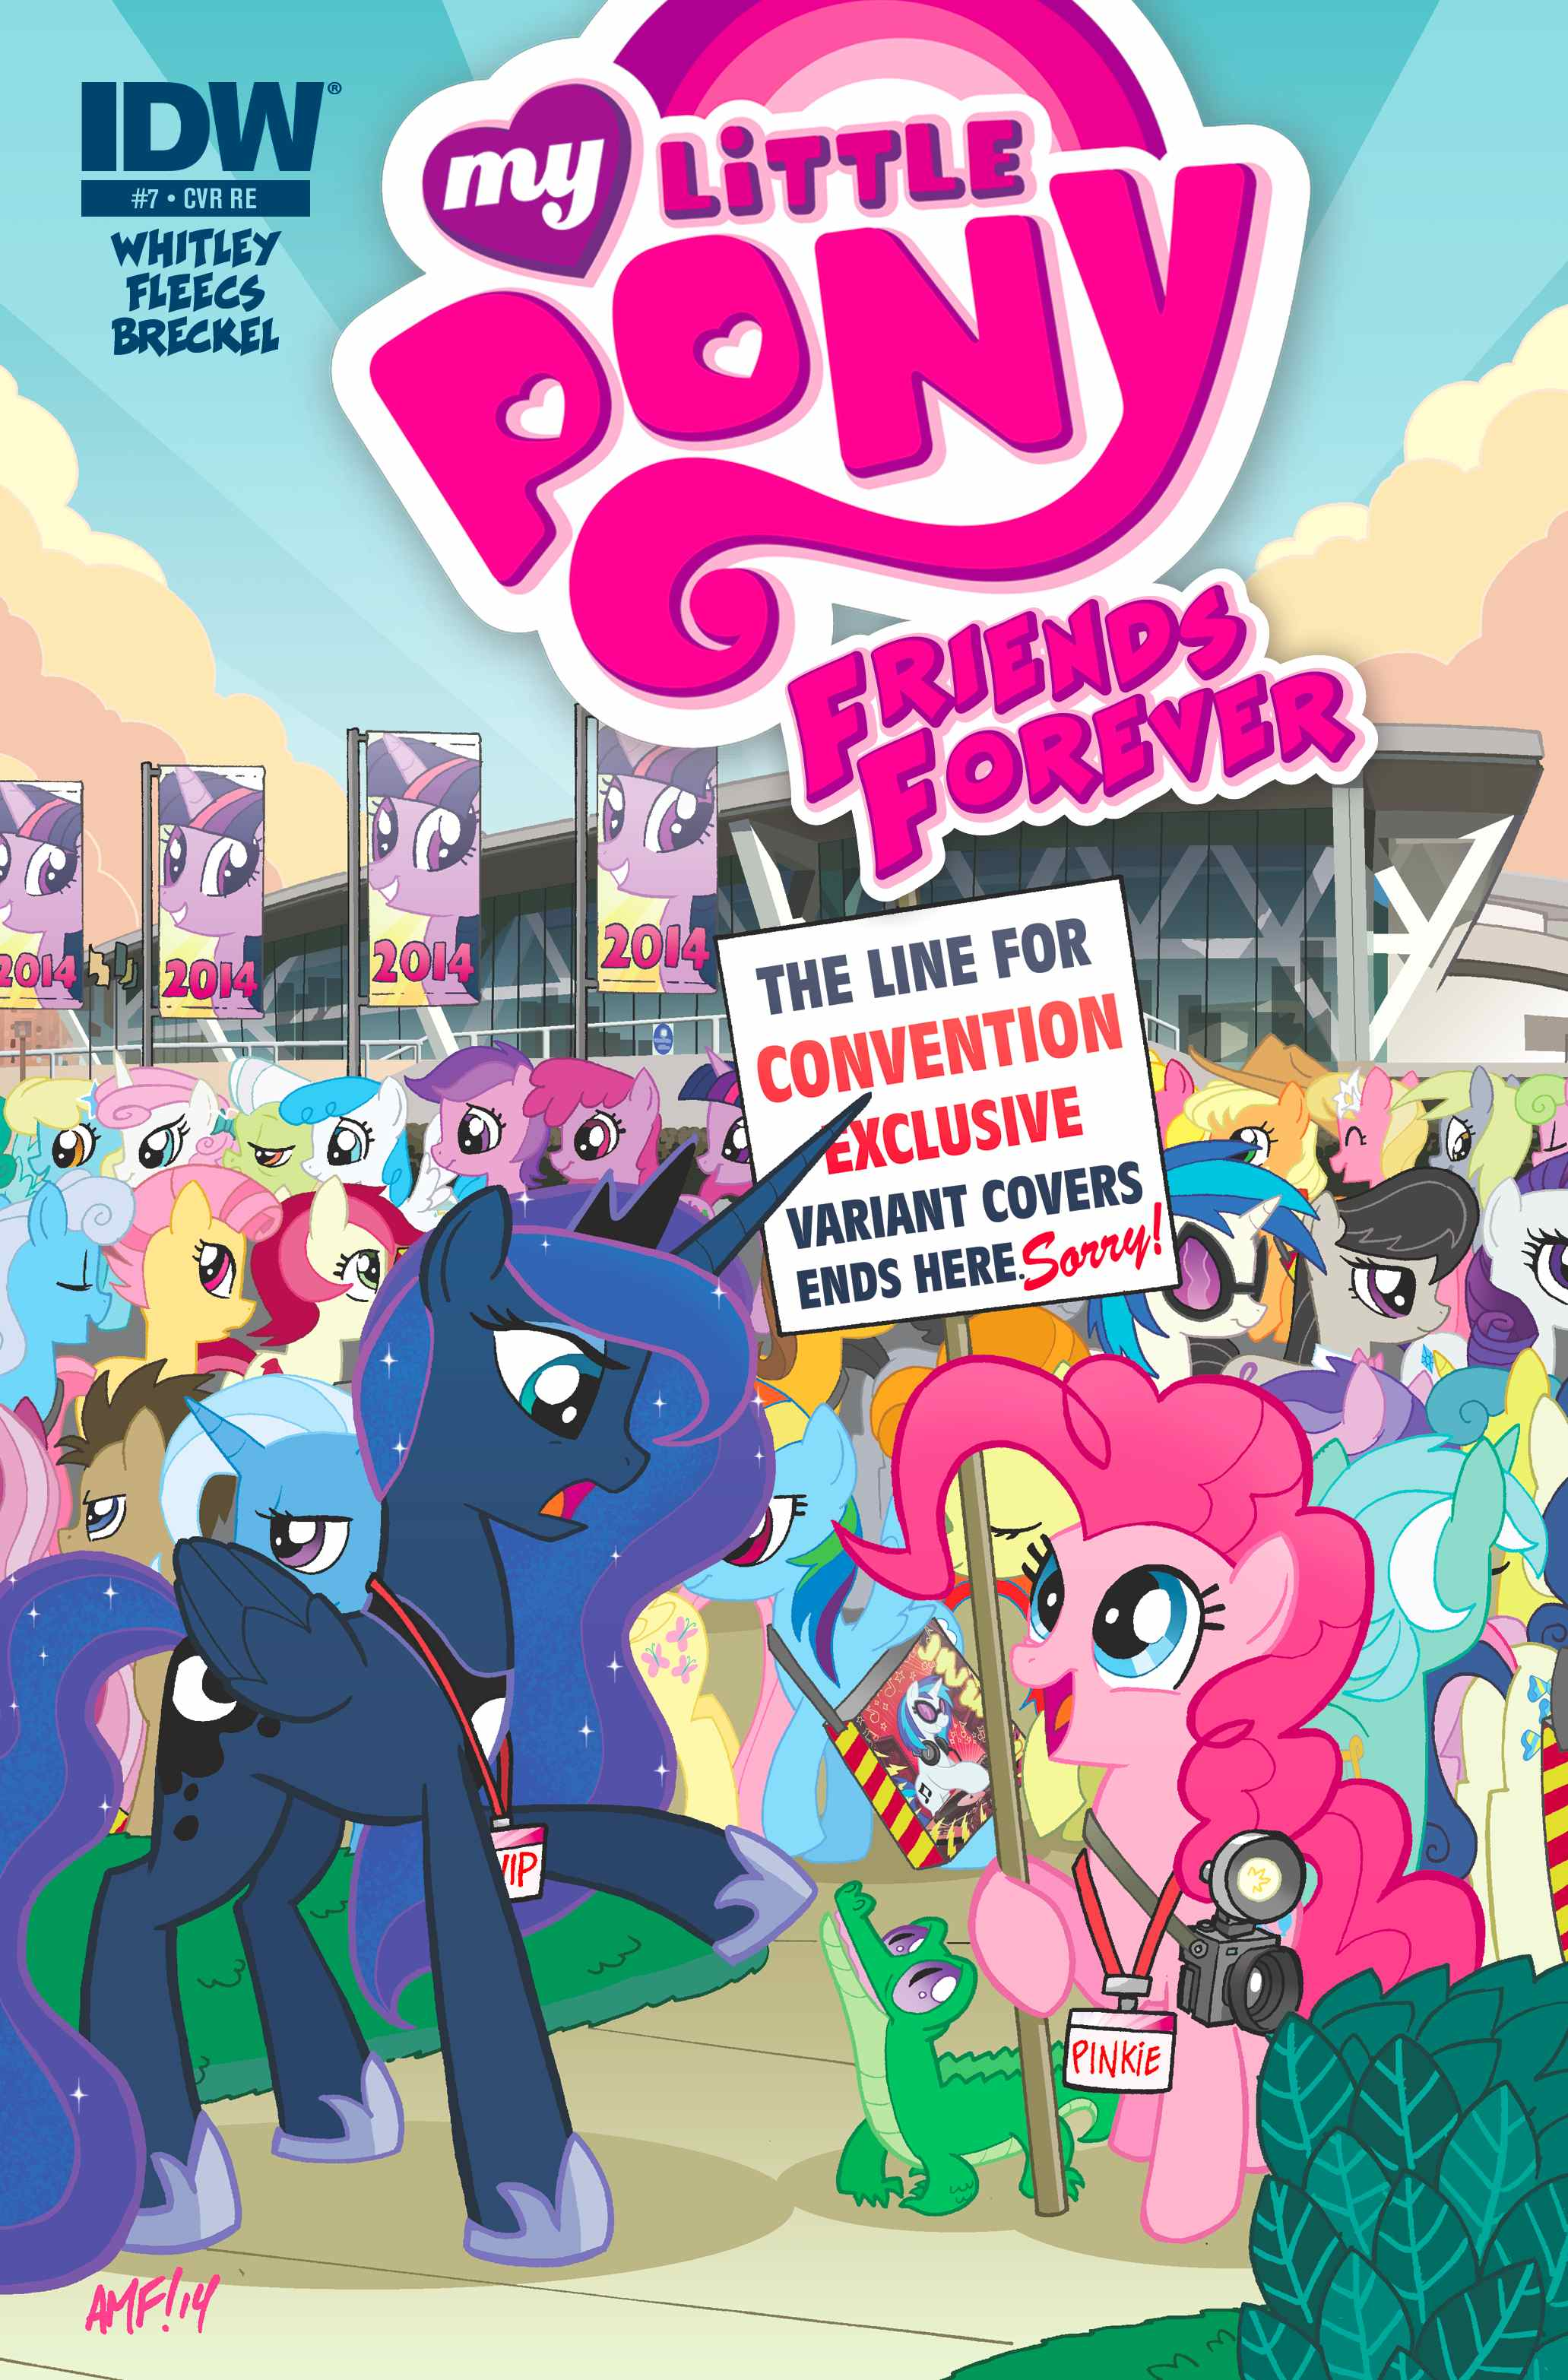 My Little Pony Friends Forever #7 (OFFICIAL BRONY CON EDITION - Limited Edition Color Cover)